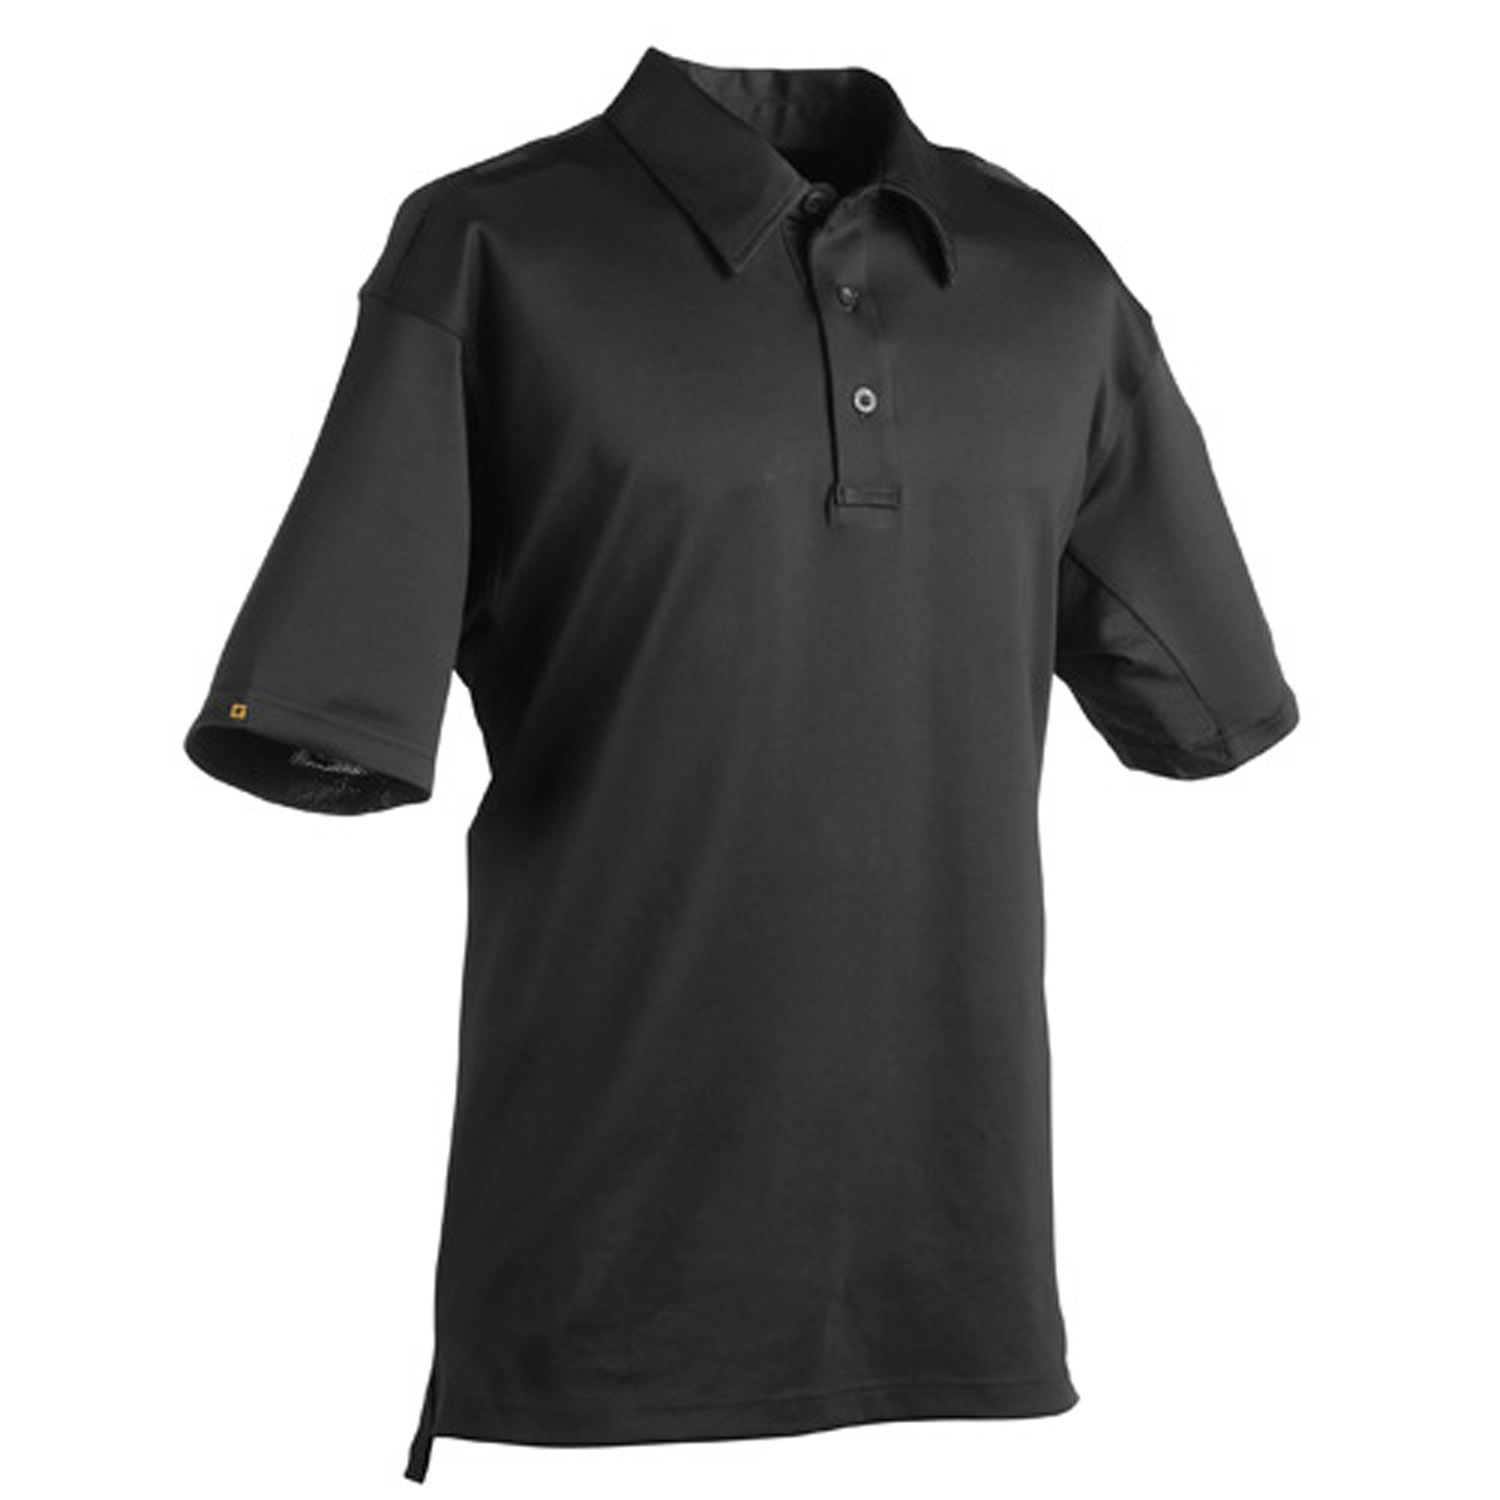 b1d33907 Propper I.C.E. Performance Polo Shirt